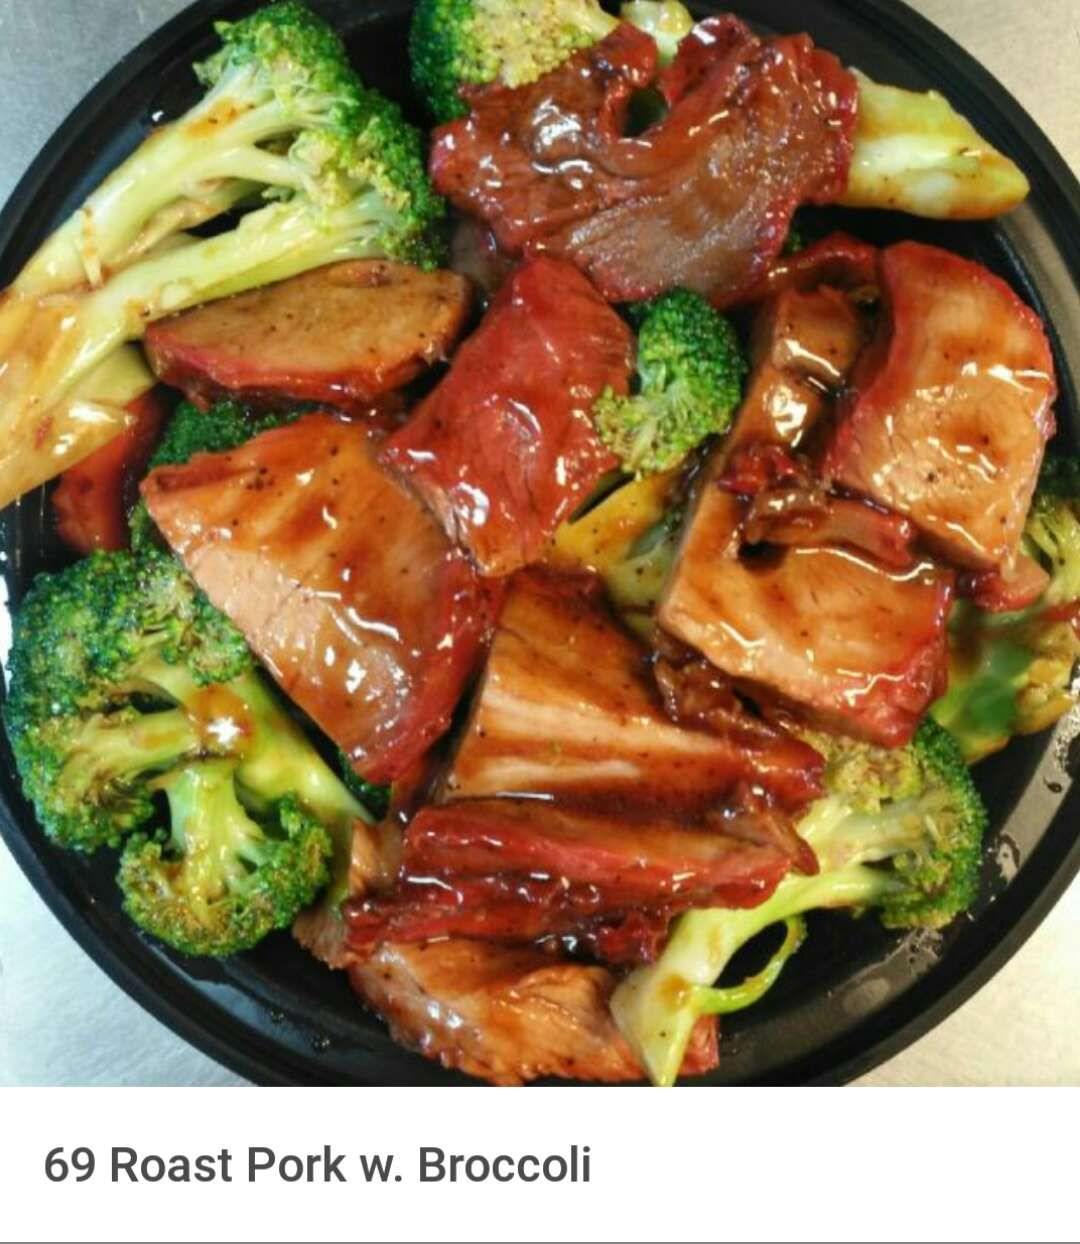 69. Roast Pork w. Broccoli Image